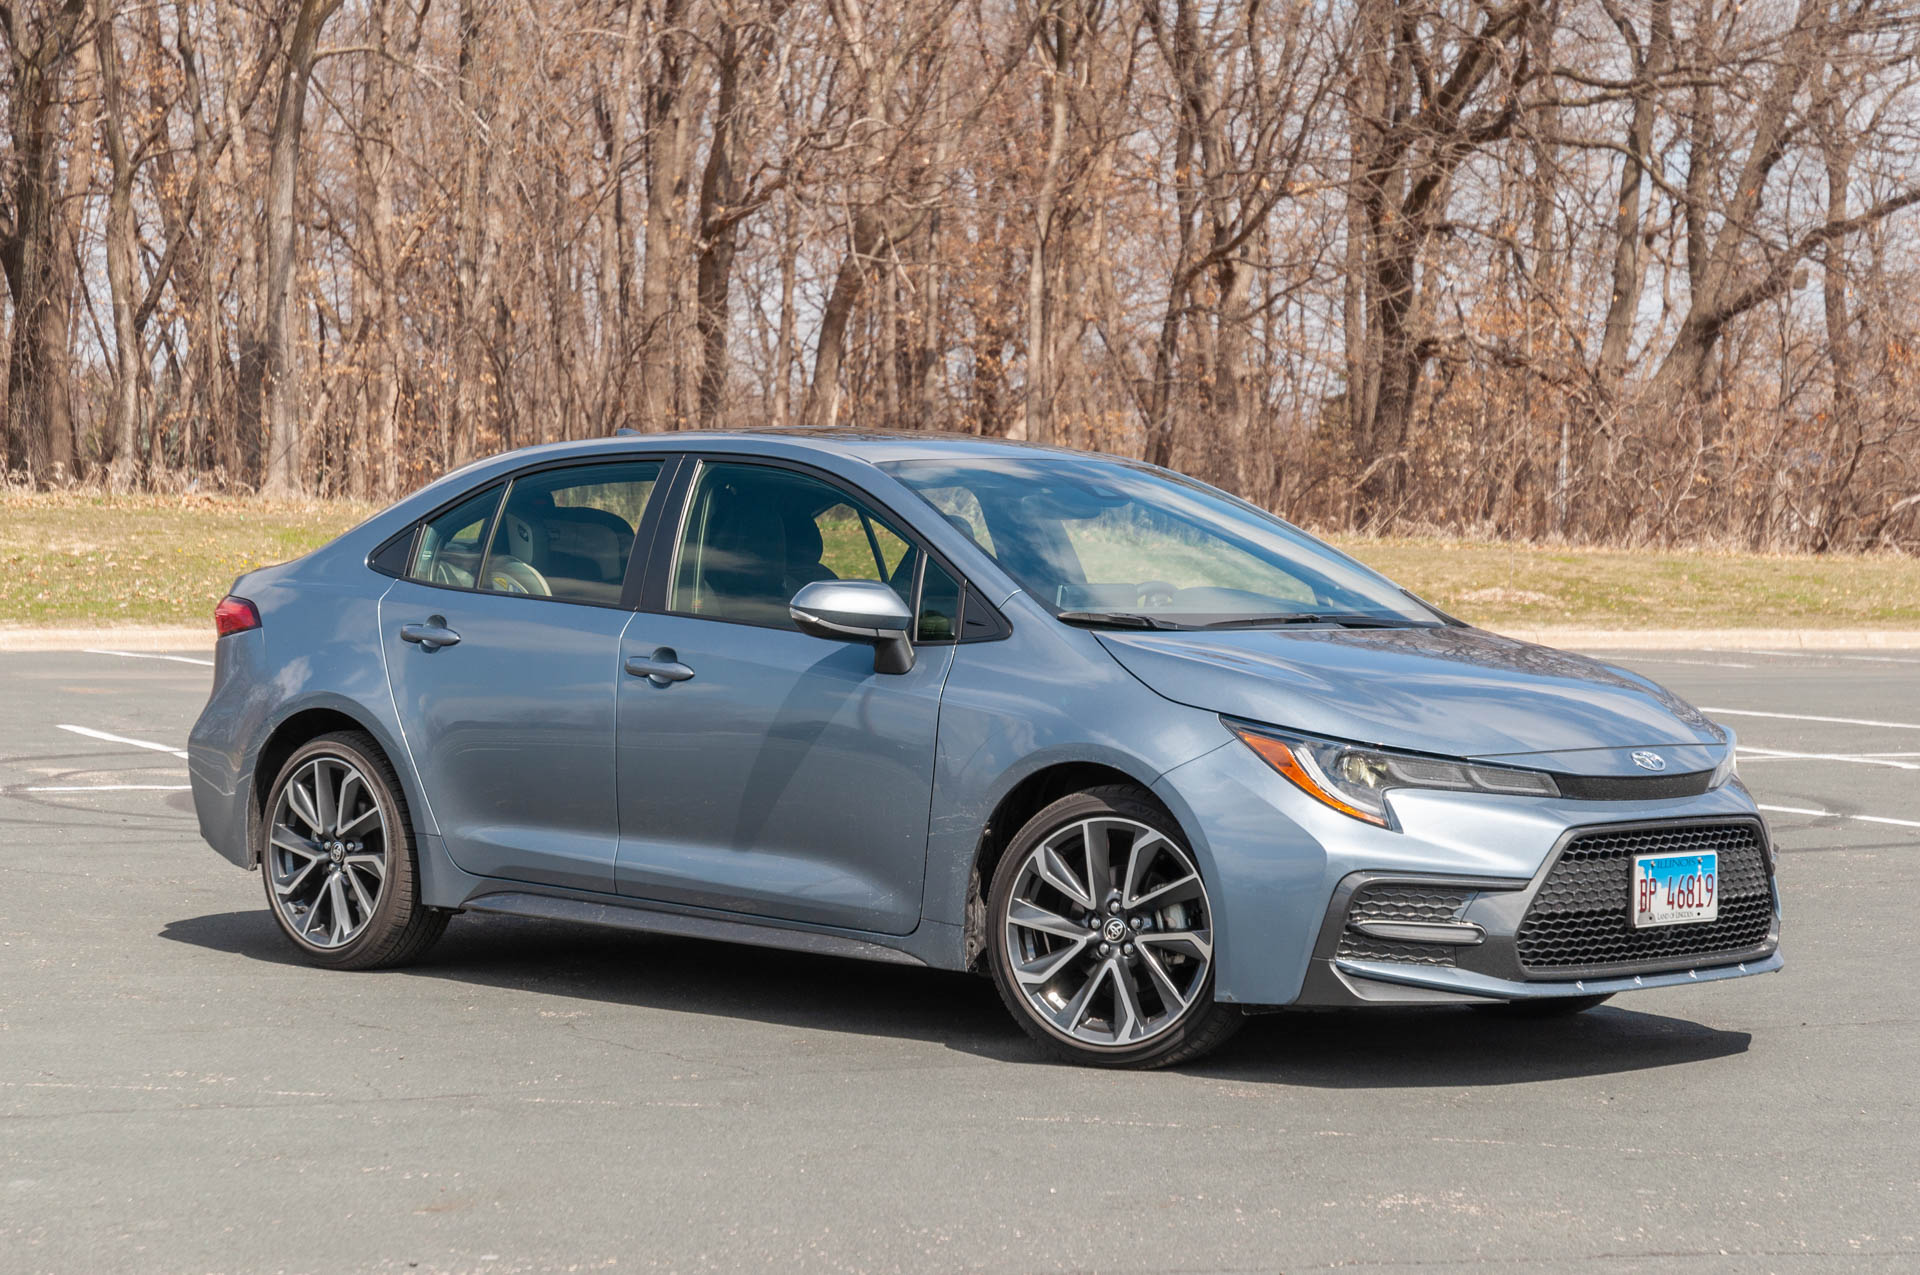 Elantra Vs Corolla 2020 Bmw 8 Series Gran Coupe Review Vw S Ev Plans What S New The Car Connection